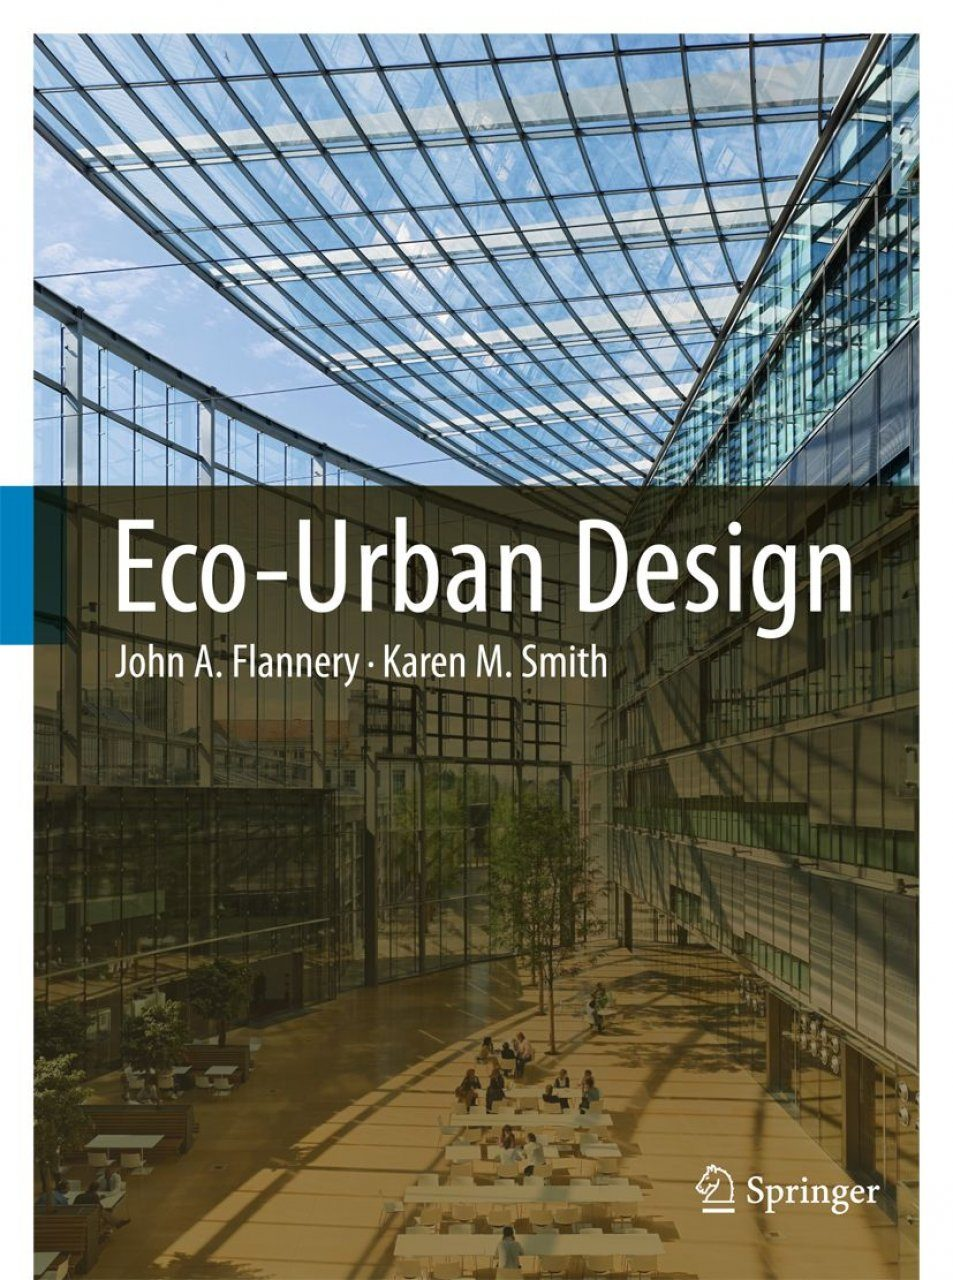 Eco-urban Design